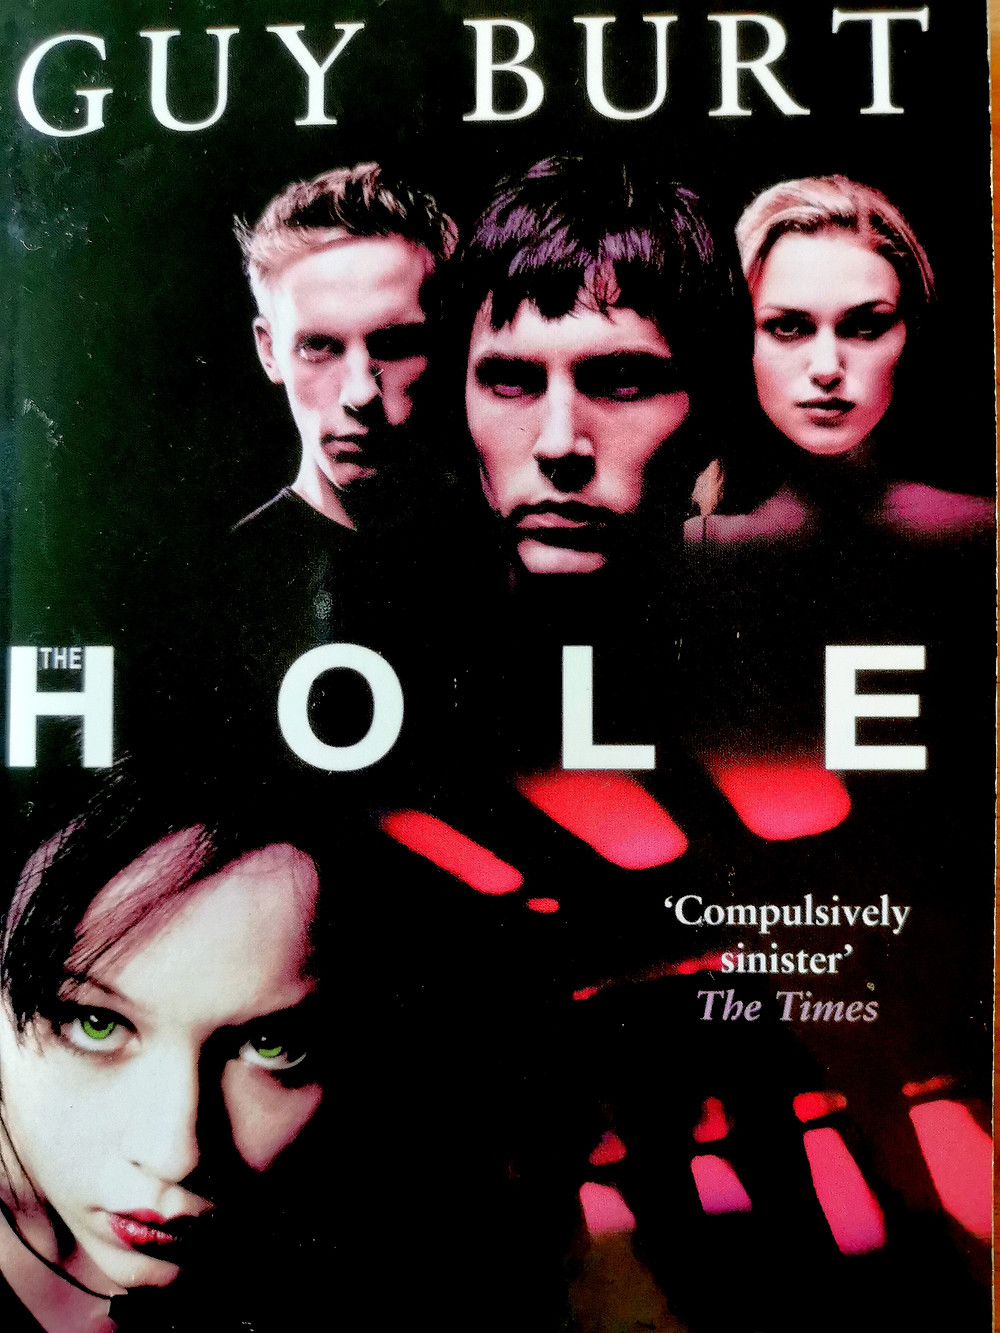 Cover of Guy Burt's 'After the Hole' showing the actors from the film: Liz in the bottom looking intense and Geoff, Mike, and Frankie above